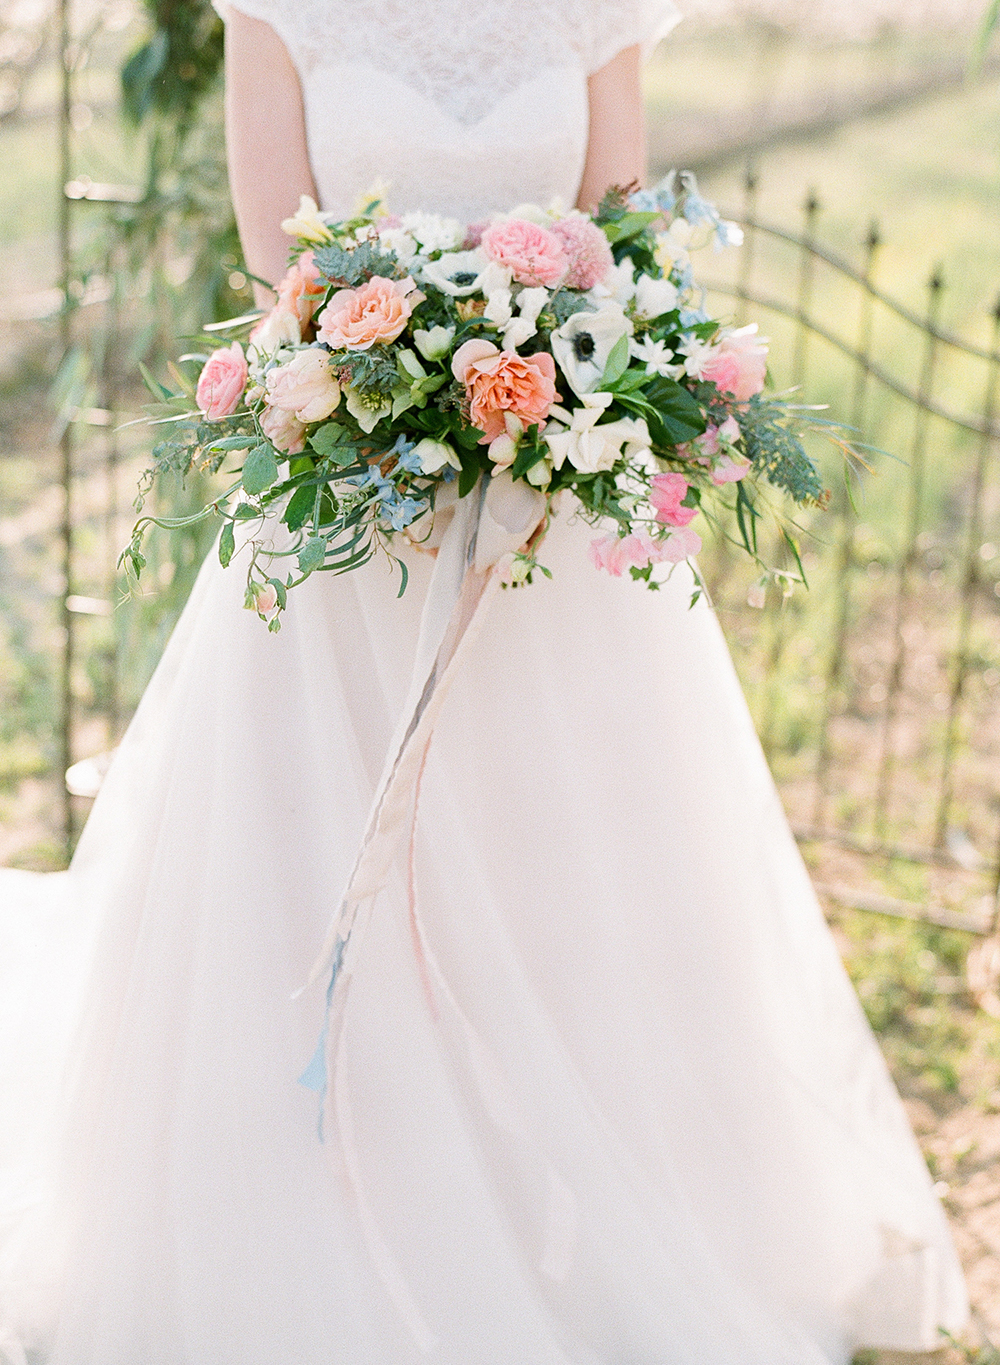 romantic wedding bouquets with anemone - photo by Katie McGihon Photography https://ruffledblog.com/spring-almond-orchard-wedding-inspiration